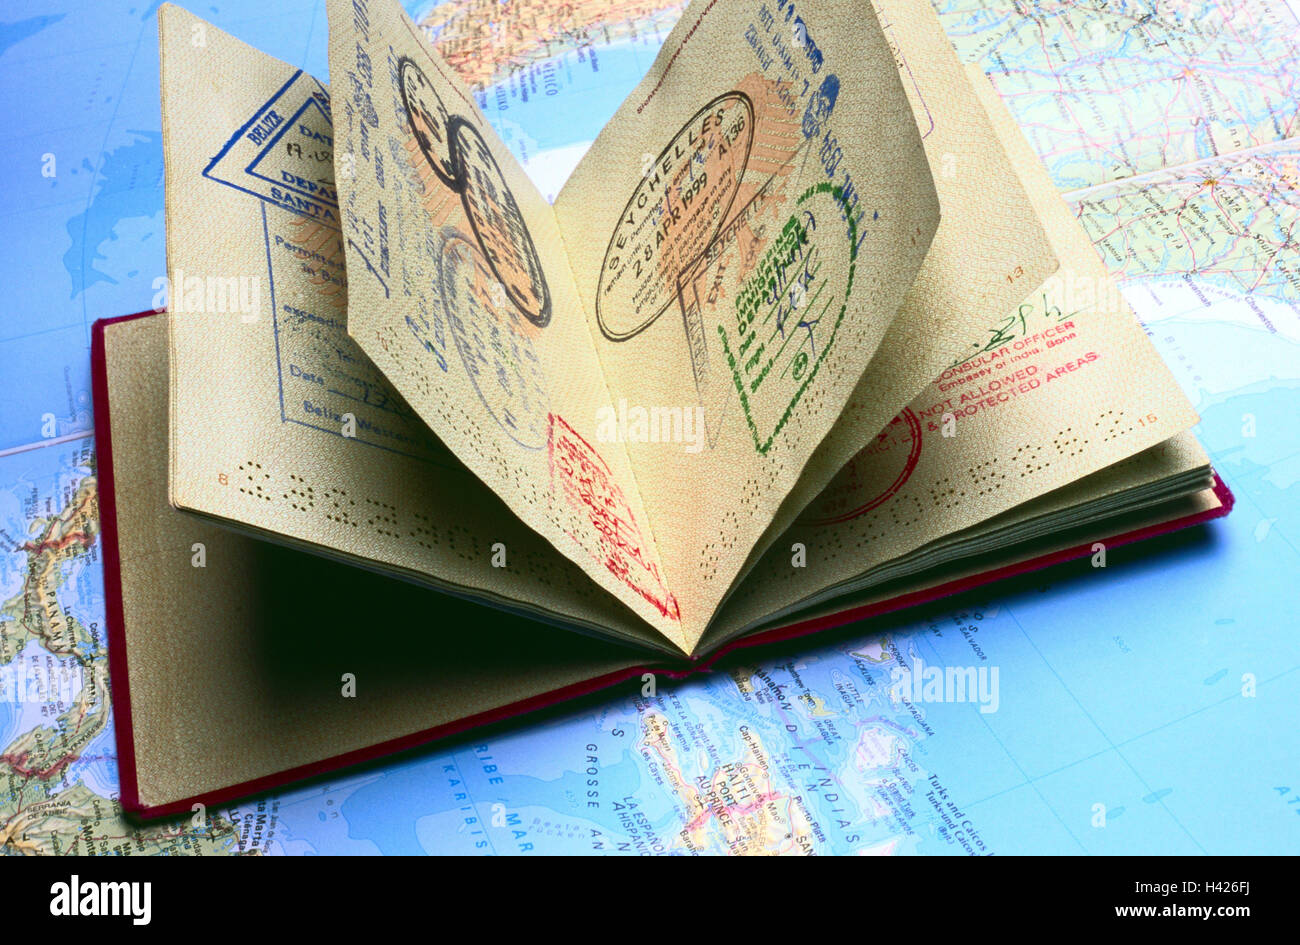 Map the world, passport, entry stamp, map, pass, identity